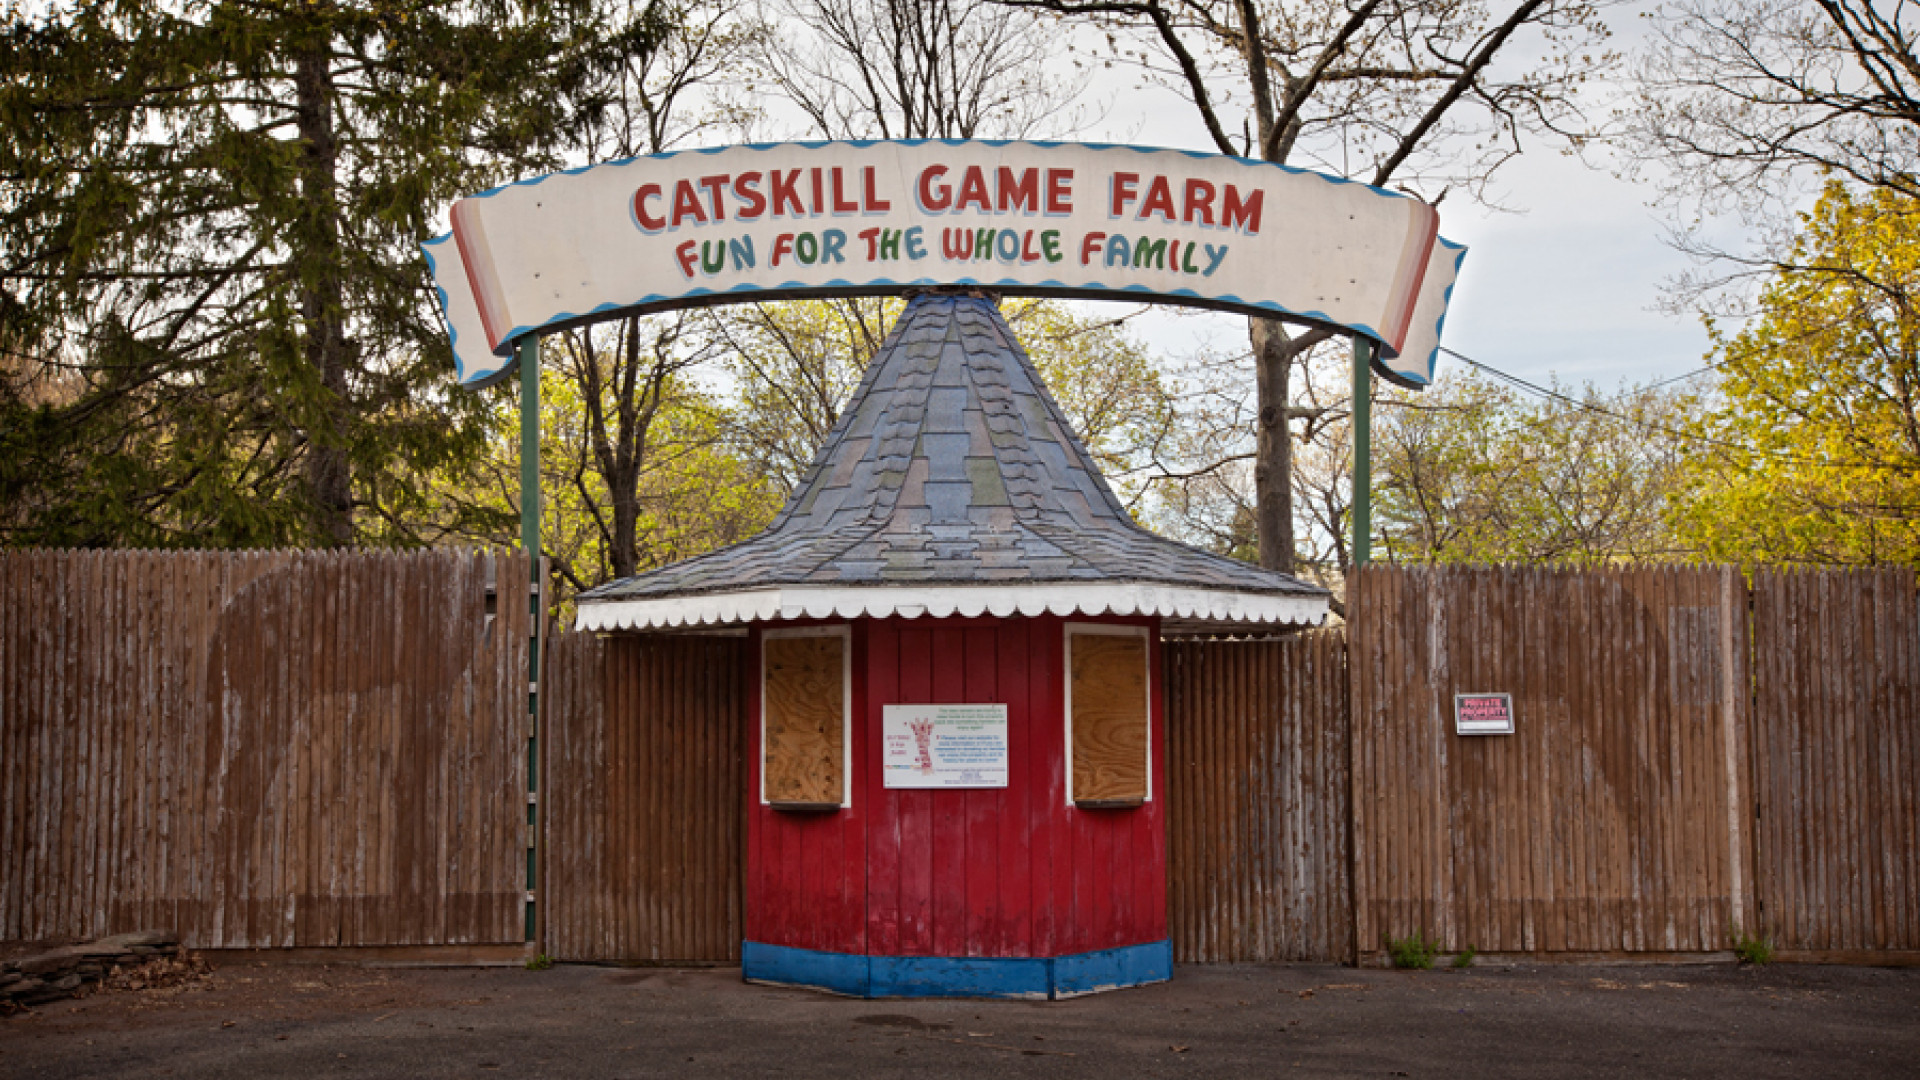 Boarded up entrace to Catskill Game Farm – New York